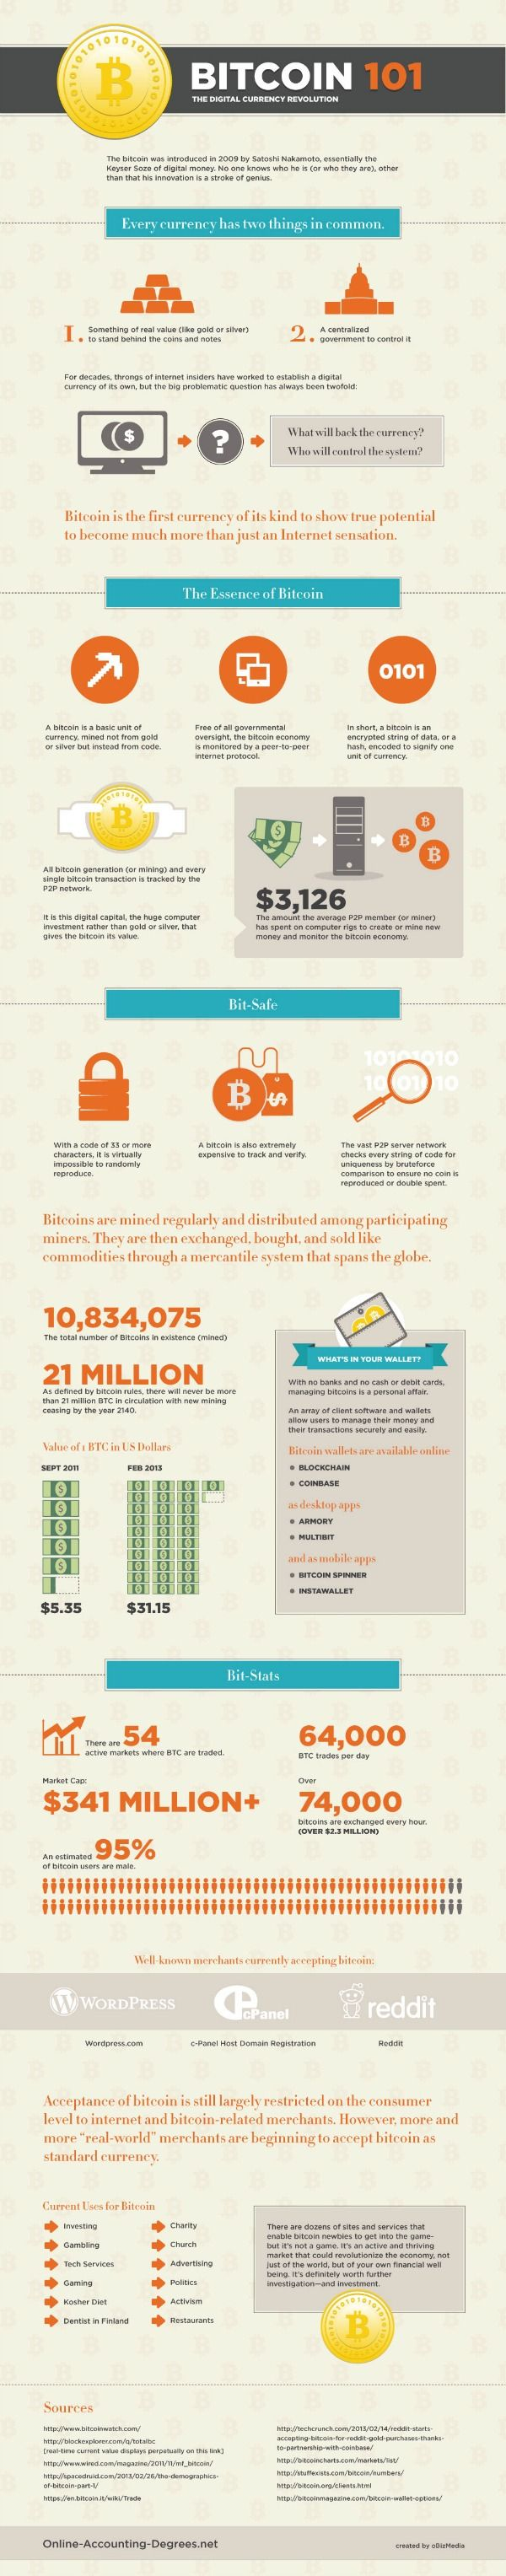 Bitcoin 101 infographic- I still don't really understand